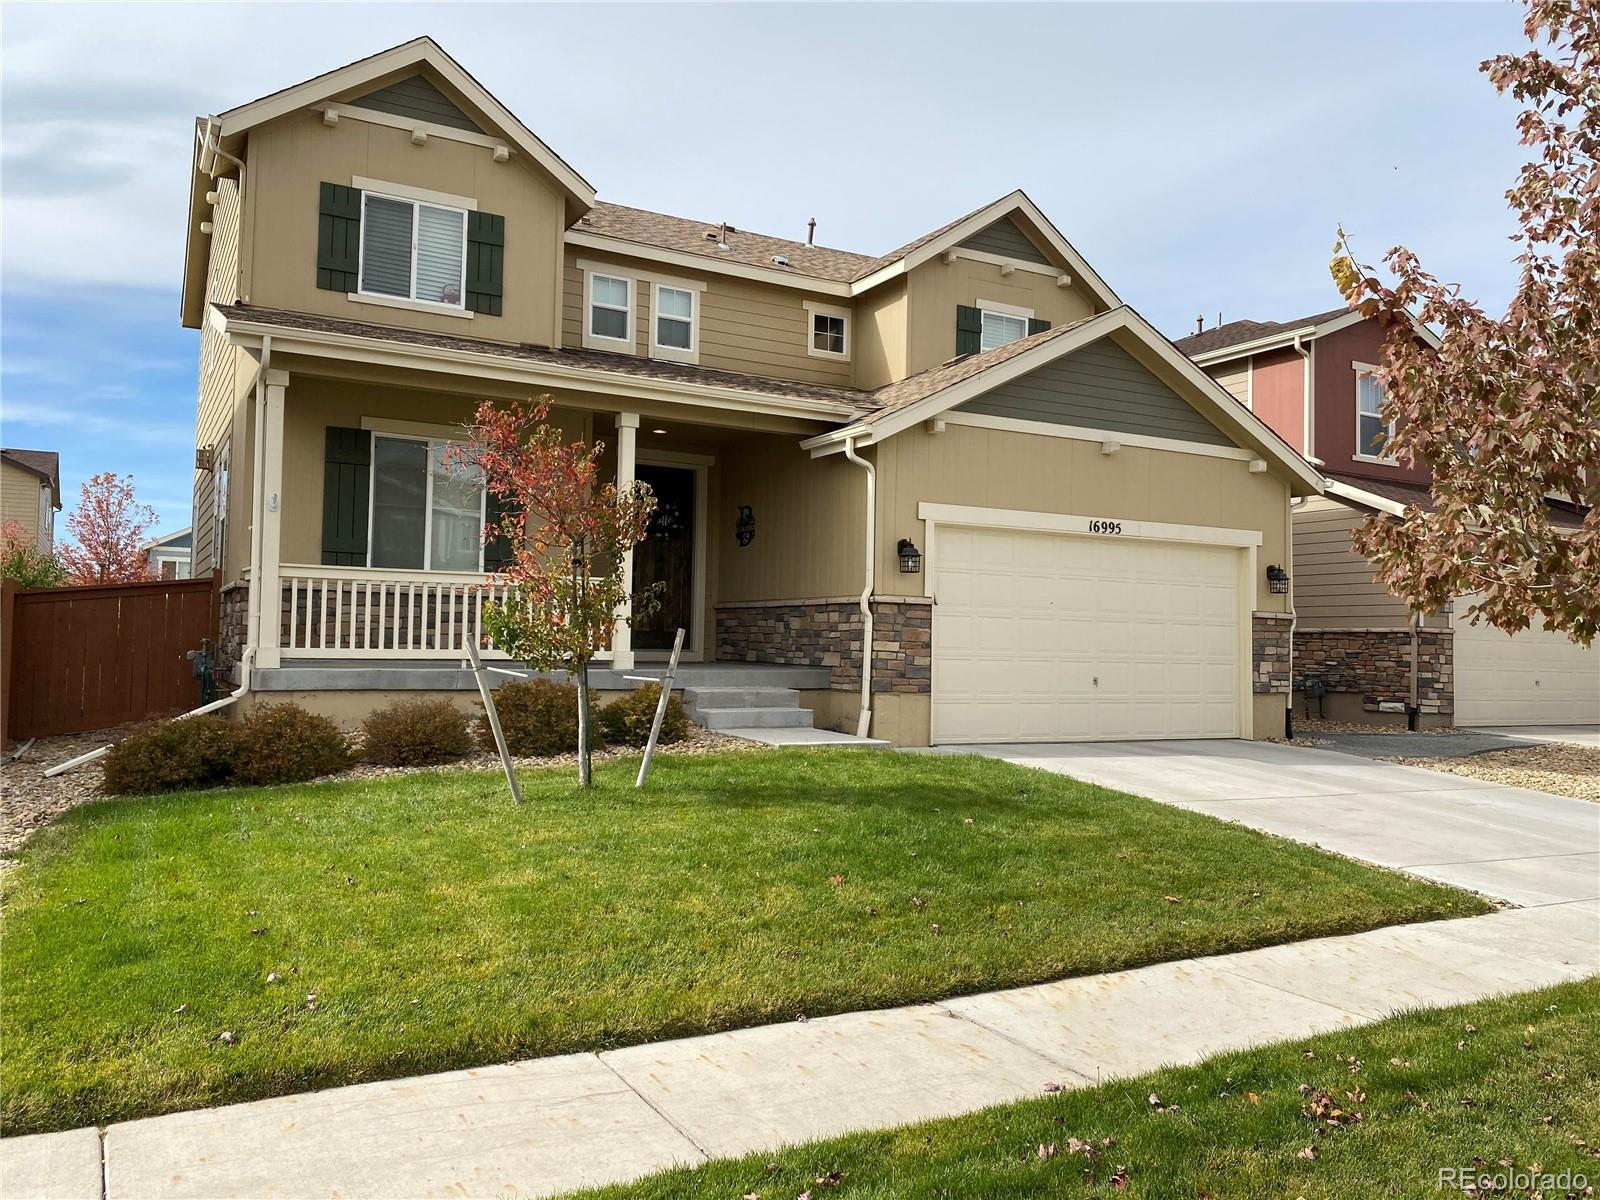 16995 Melody Drive, Broomfield, CO 80023 - #: 8547275